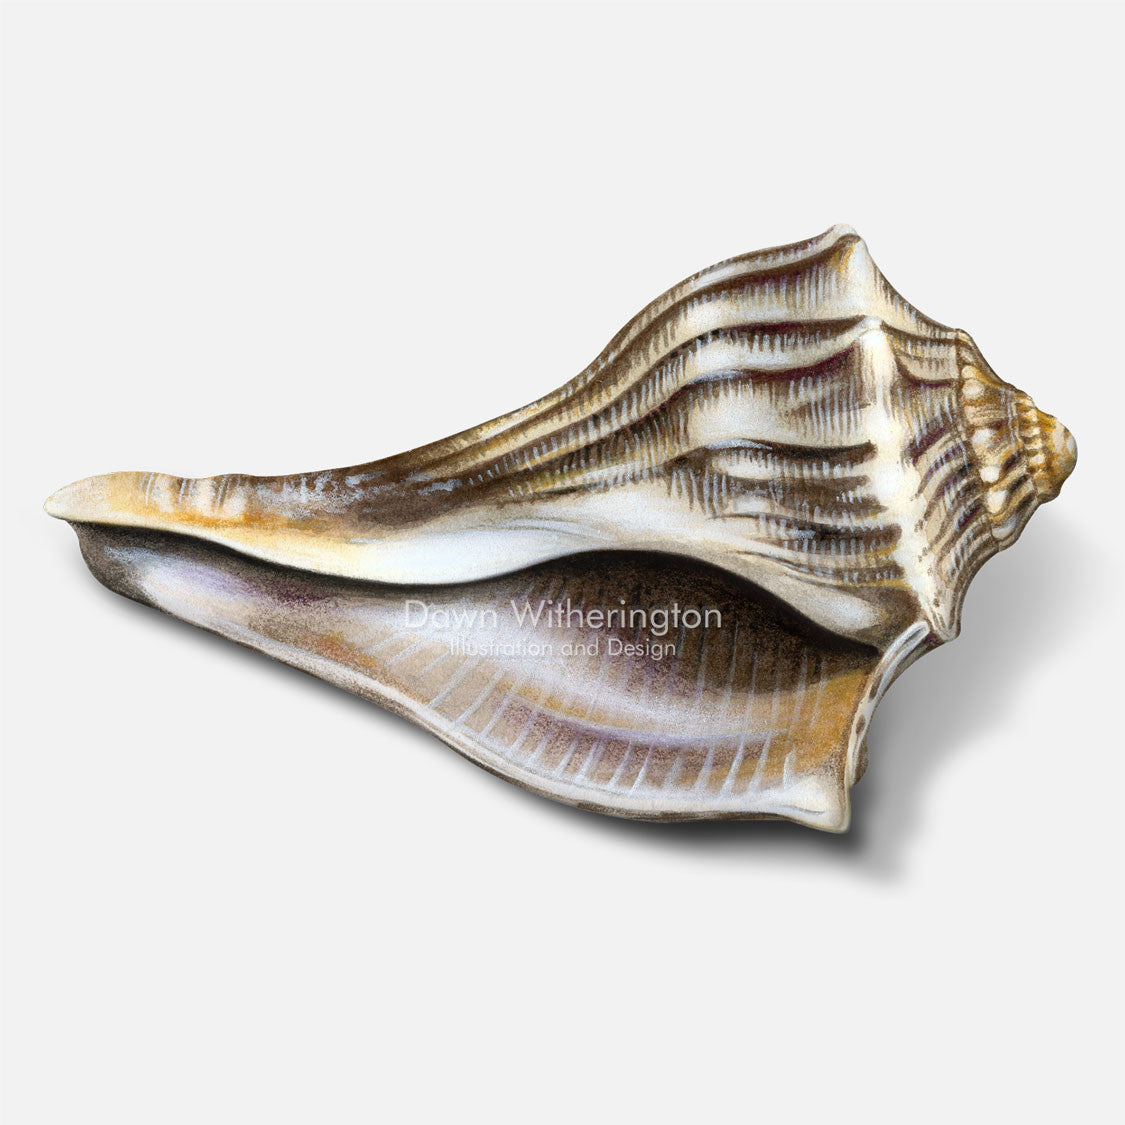 This beautiful drawing of a knobbed whelk shell, Busycon carica, is biologically accurate in detail.